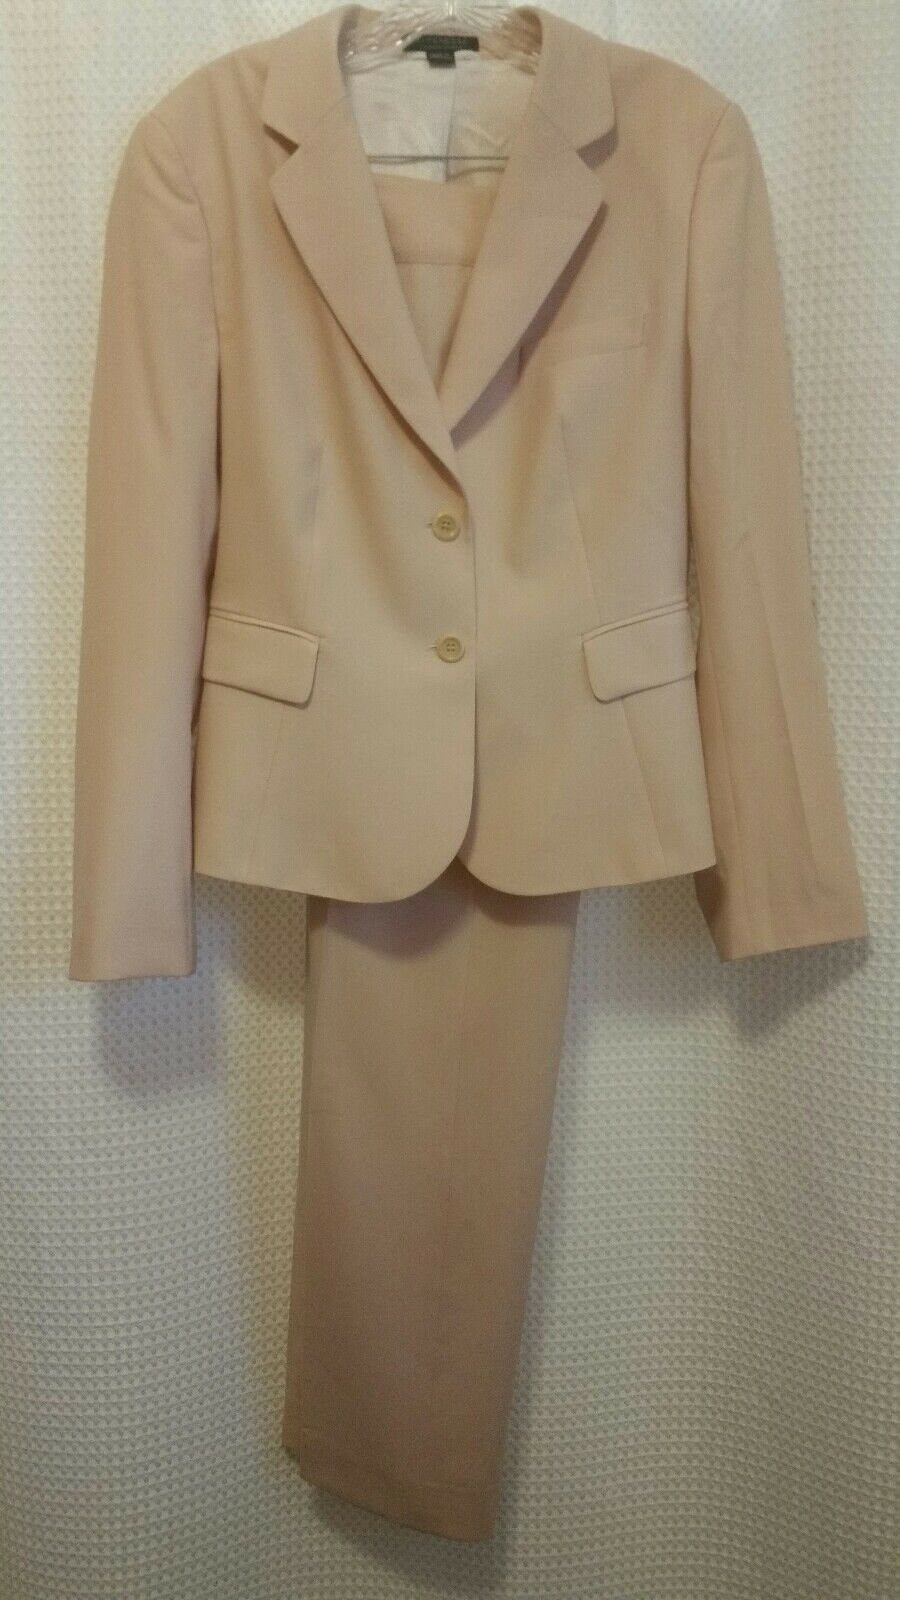 STRENESSE Pale Pink 2 Piece Lined Pant Suit Size 8